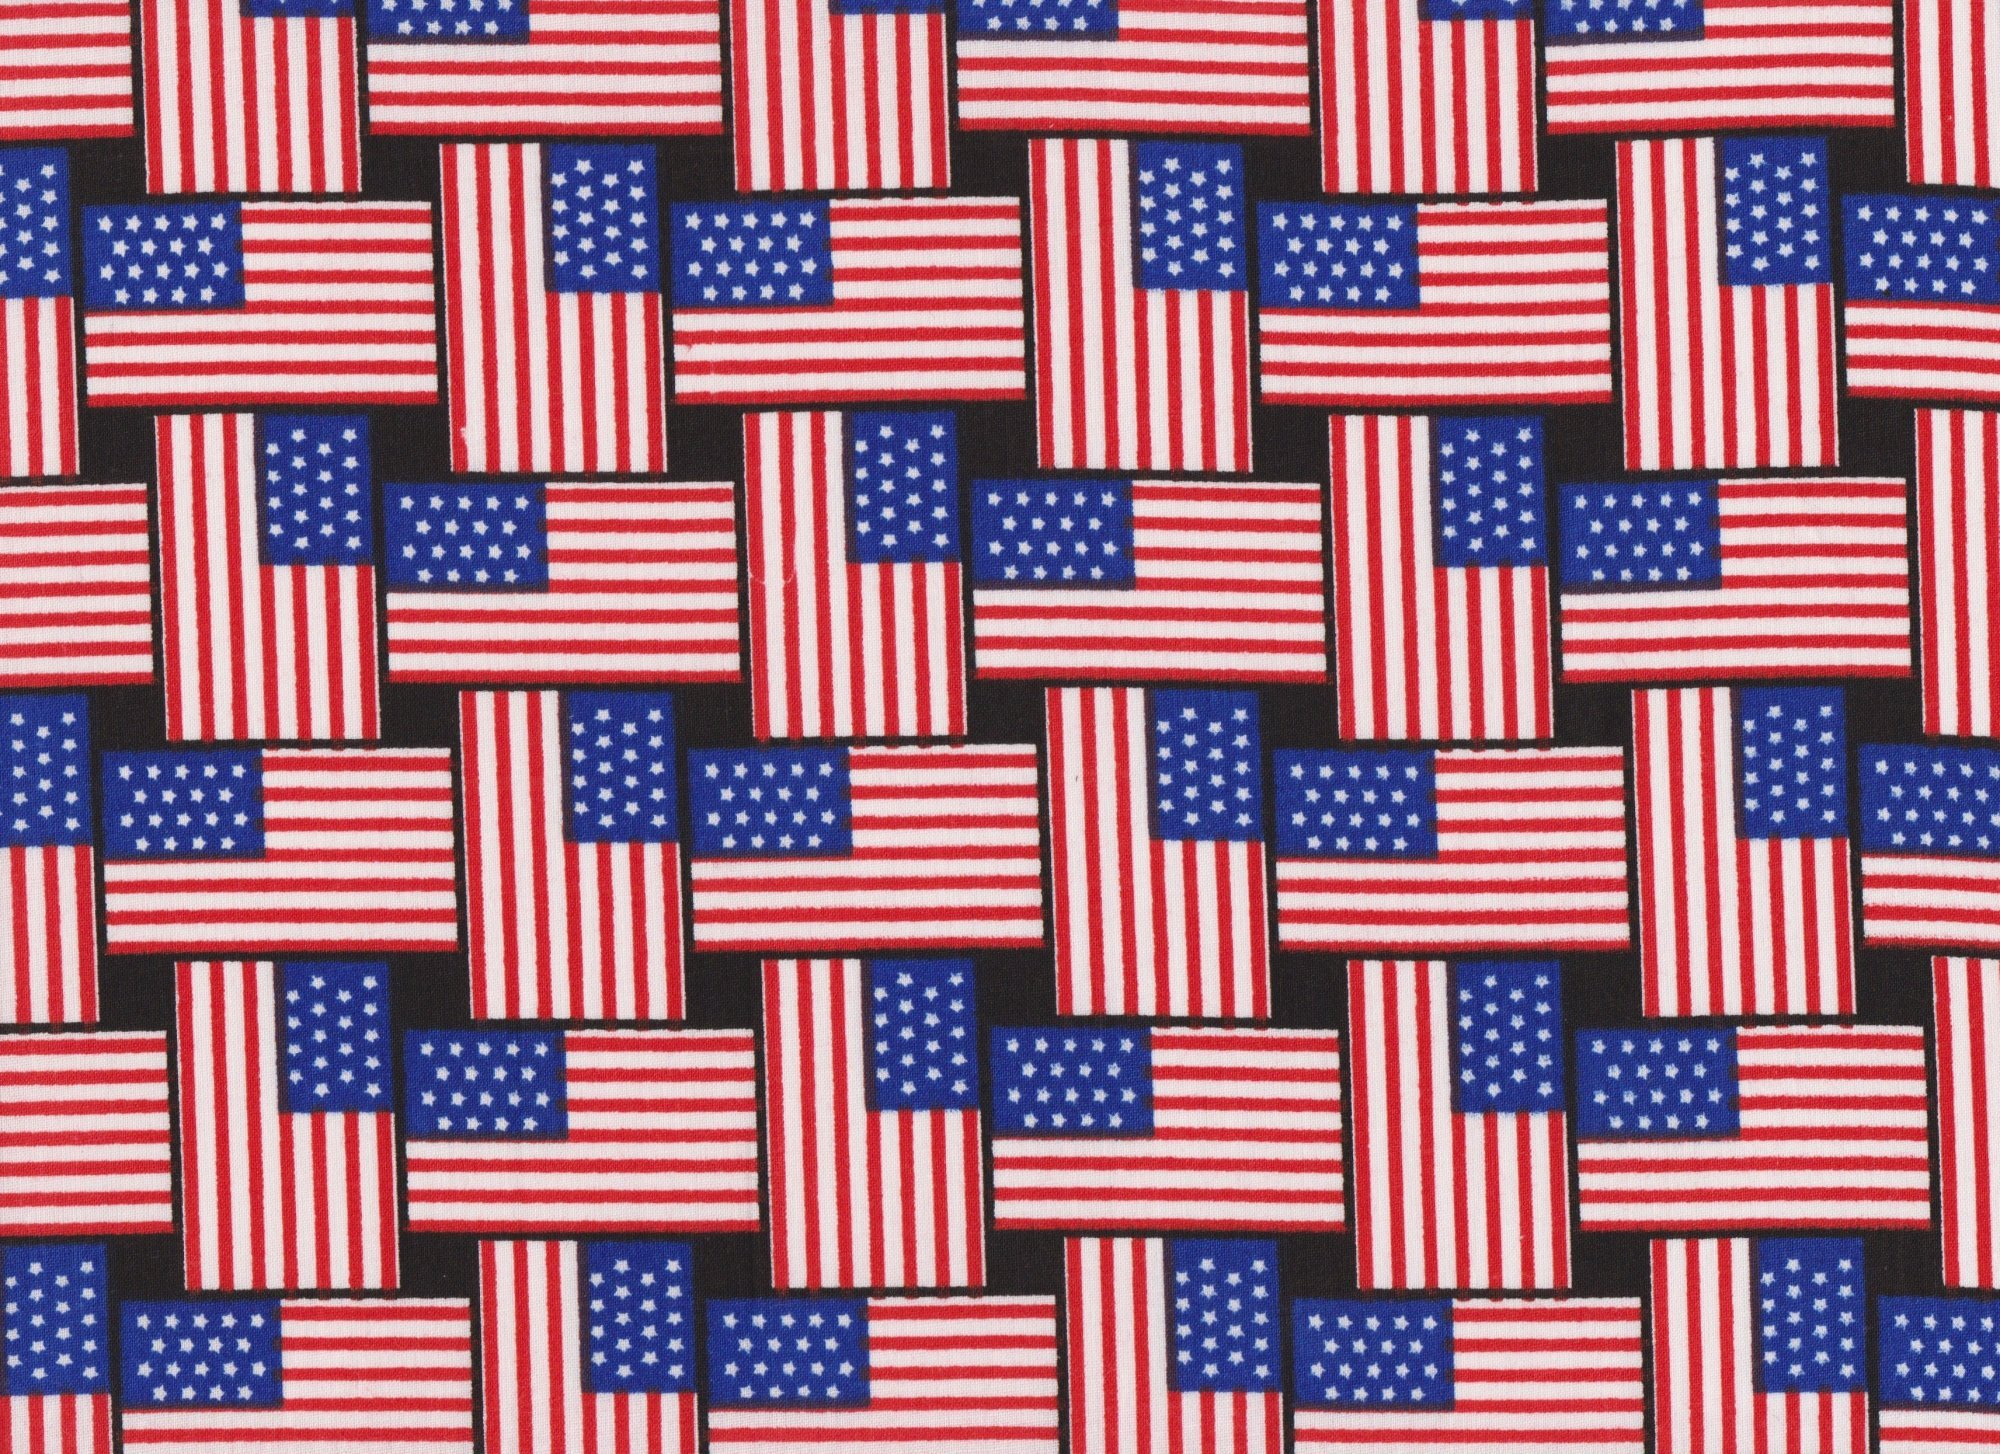 Weaved Flags